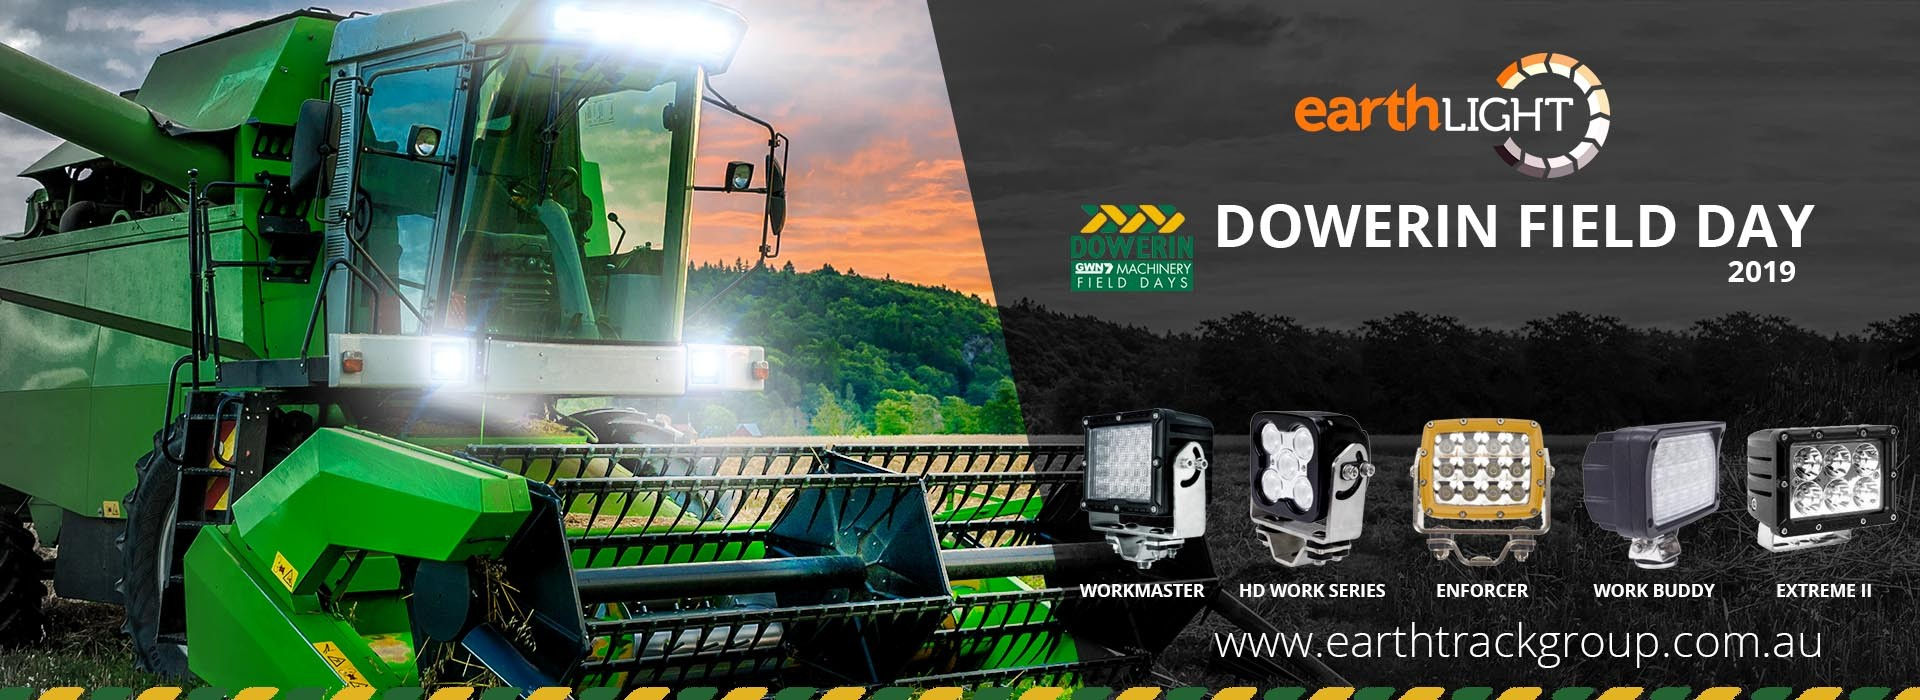 dowerin field days | earthlight | earthtrack group